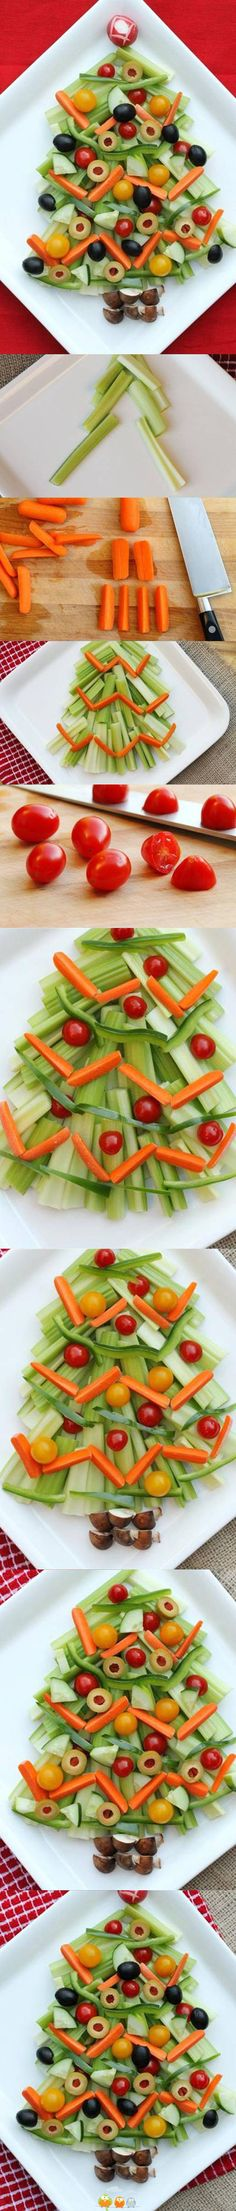 Christmas Salad - individual or family size - easy peasy!